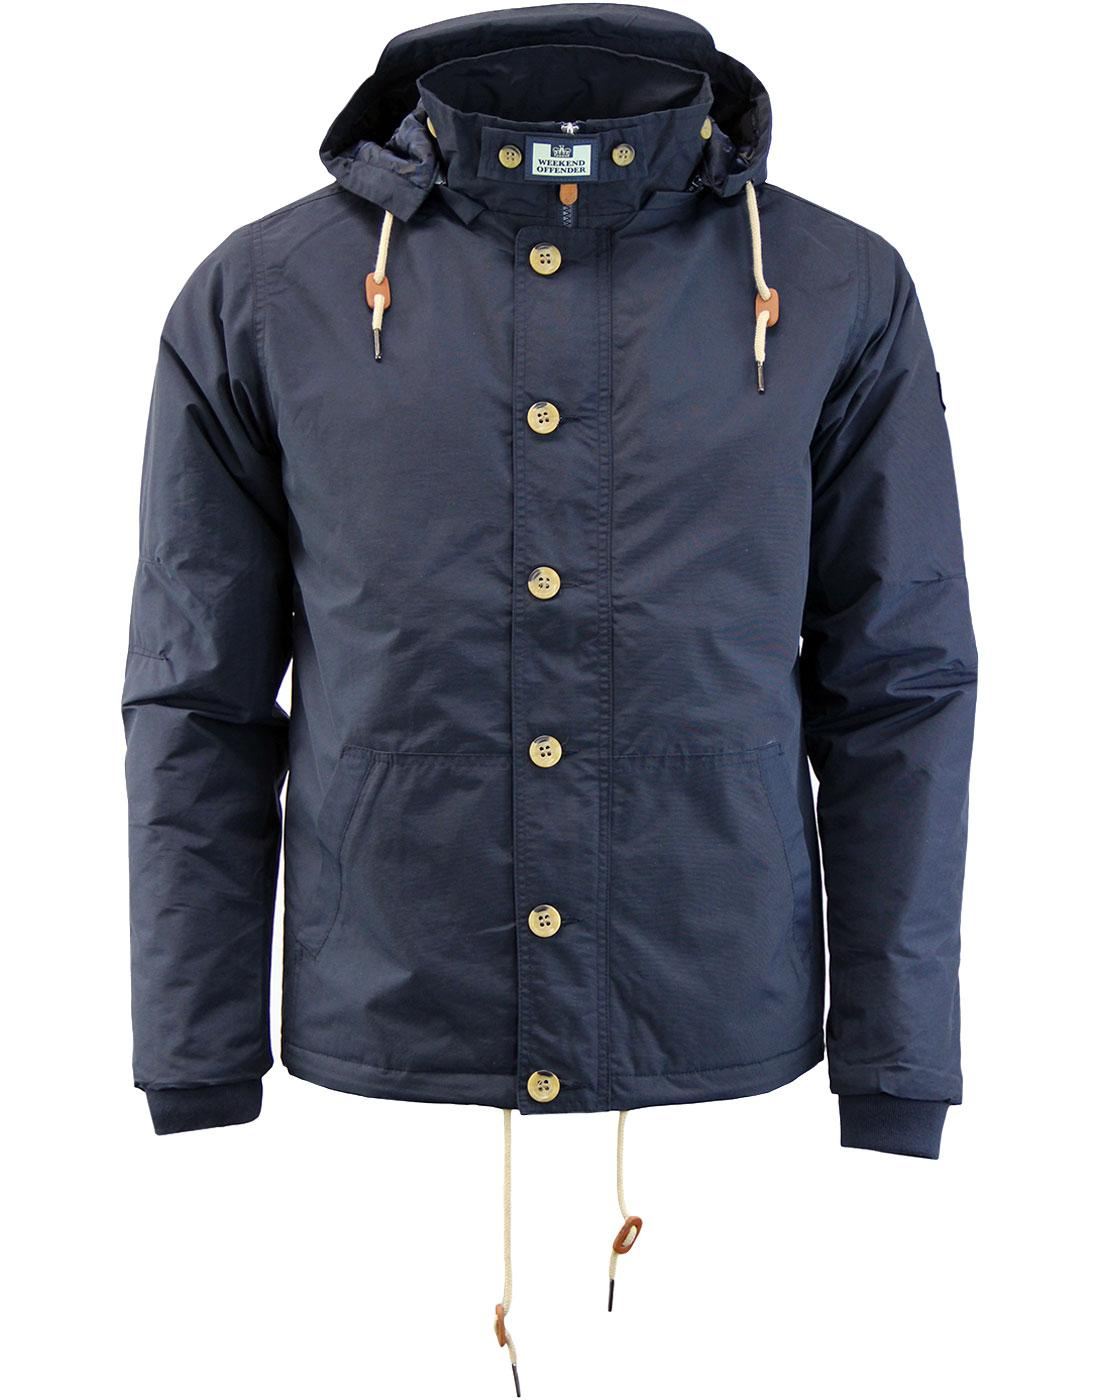 Damon WEEKEND OFFENDER Retro Funnel Neck Jacket